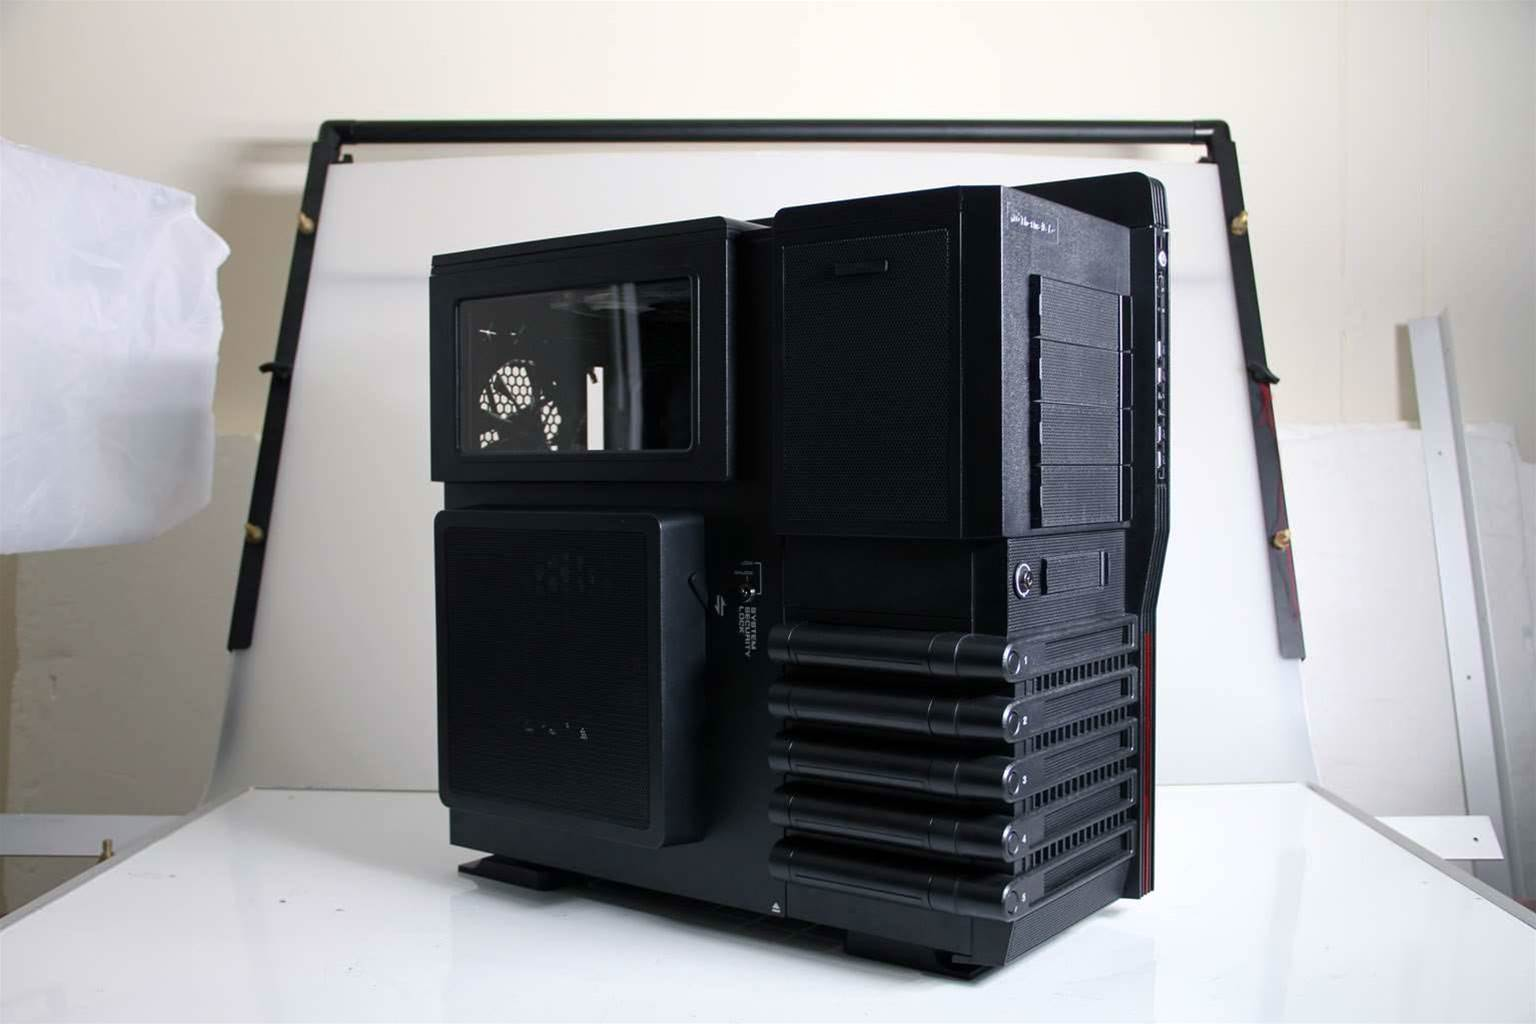 EXCLUSIVE: Thermaltake's new Level10 GT case